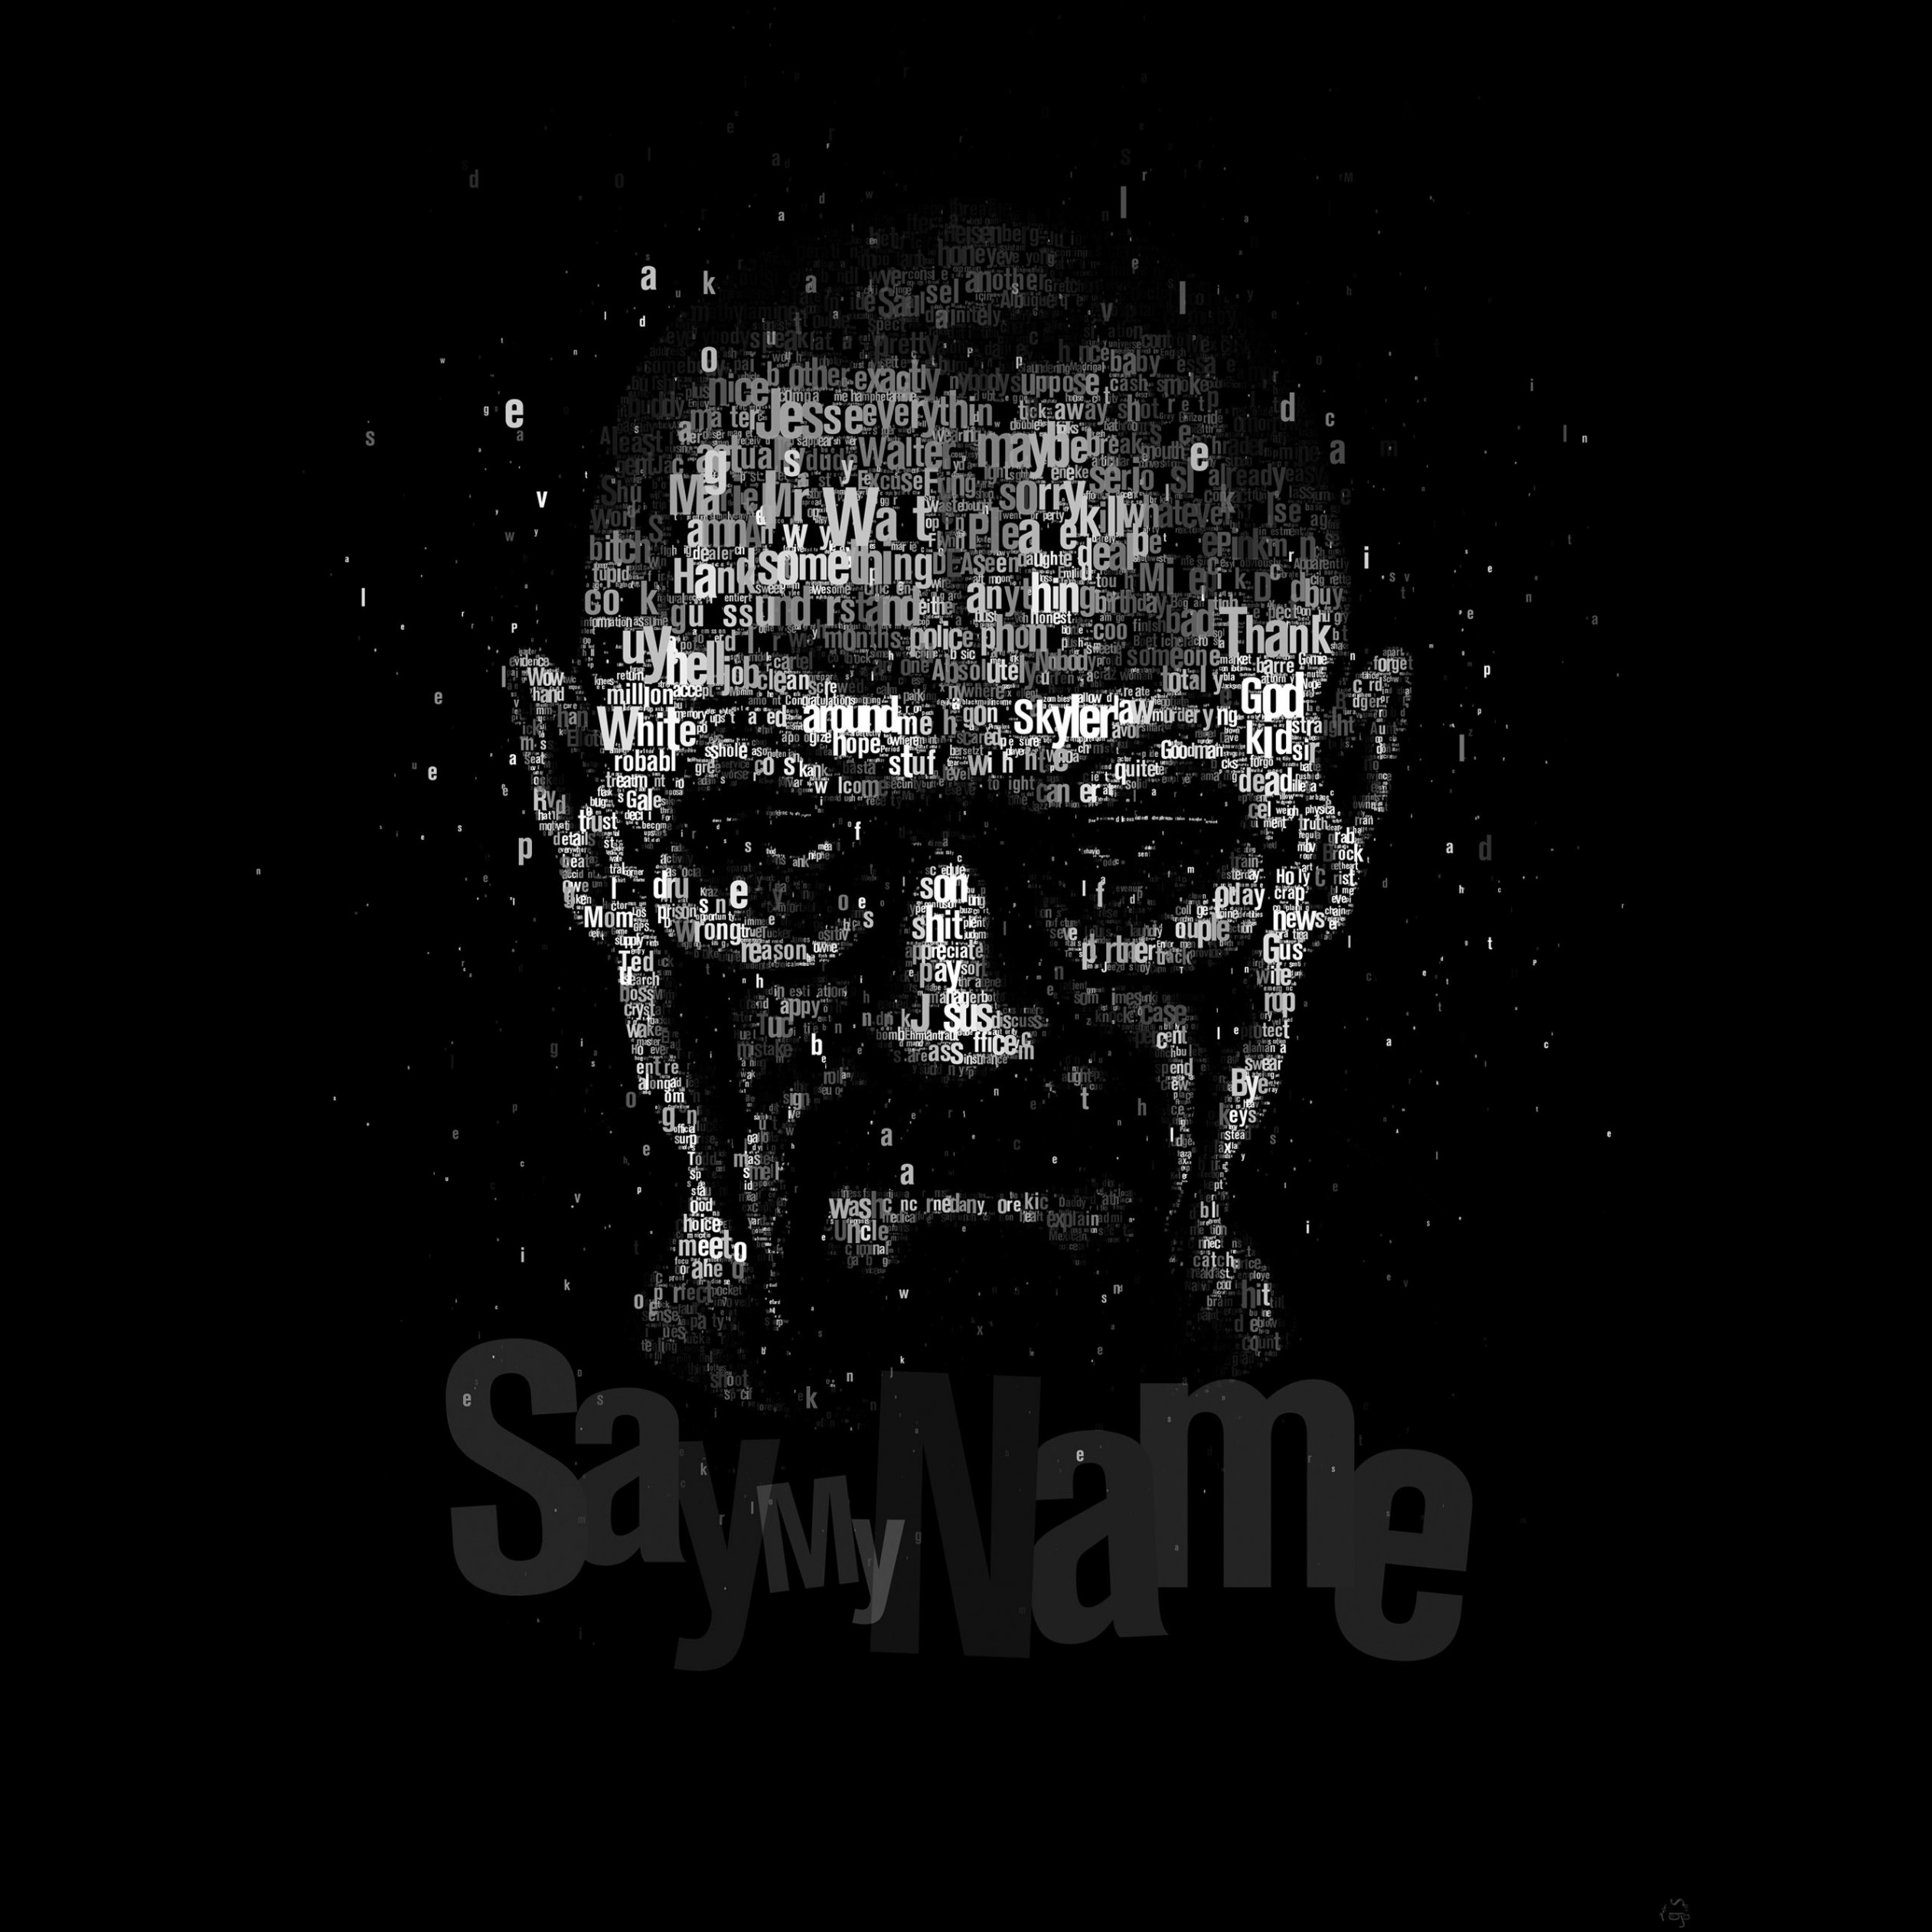 Say My Name - Typography Art Wallpaper for Apple iPad 3